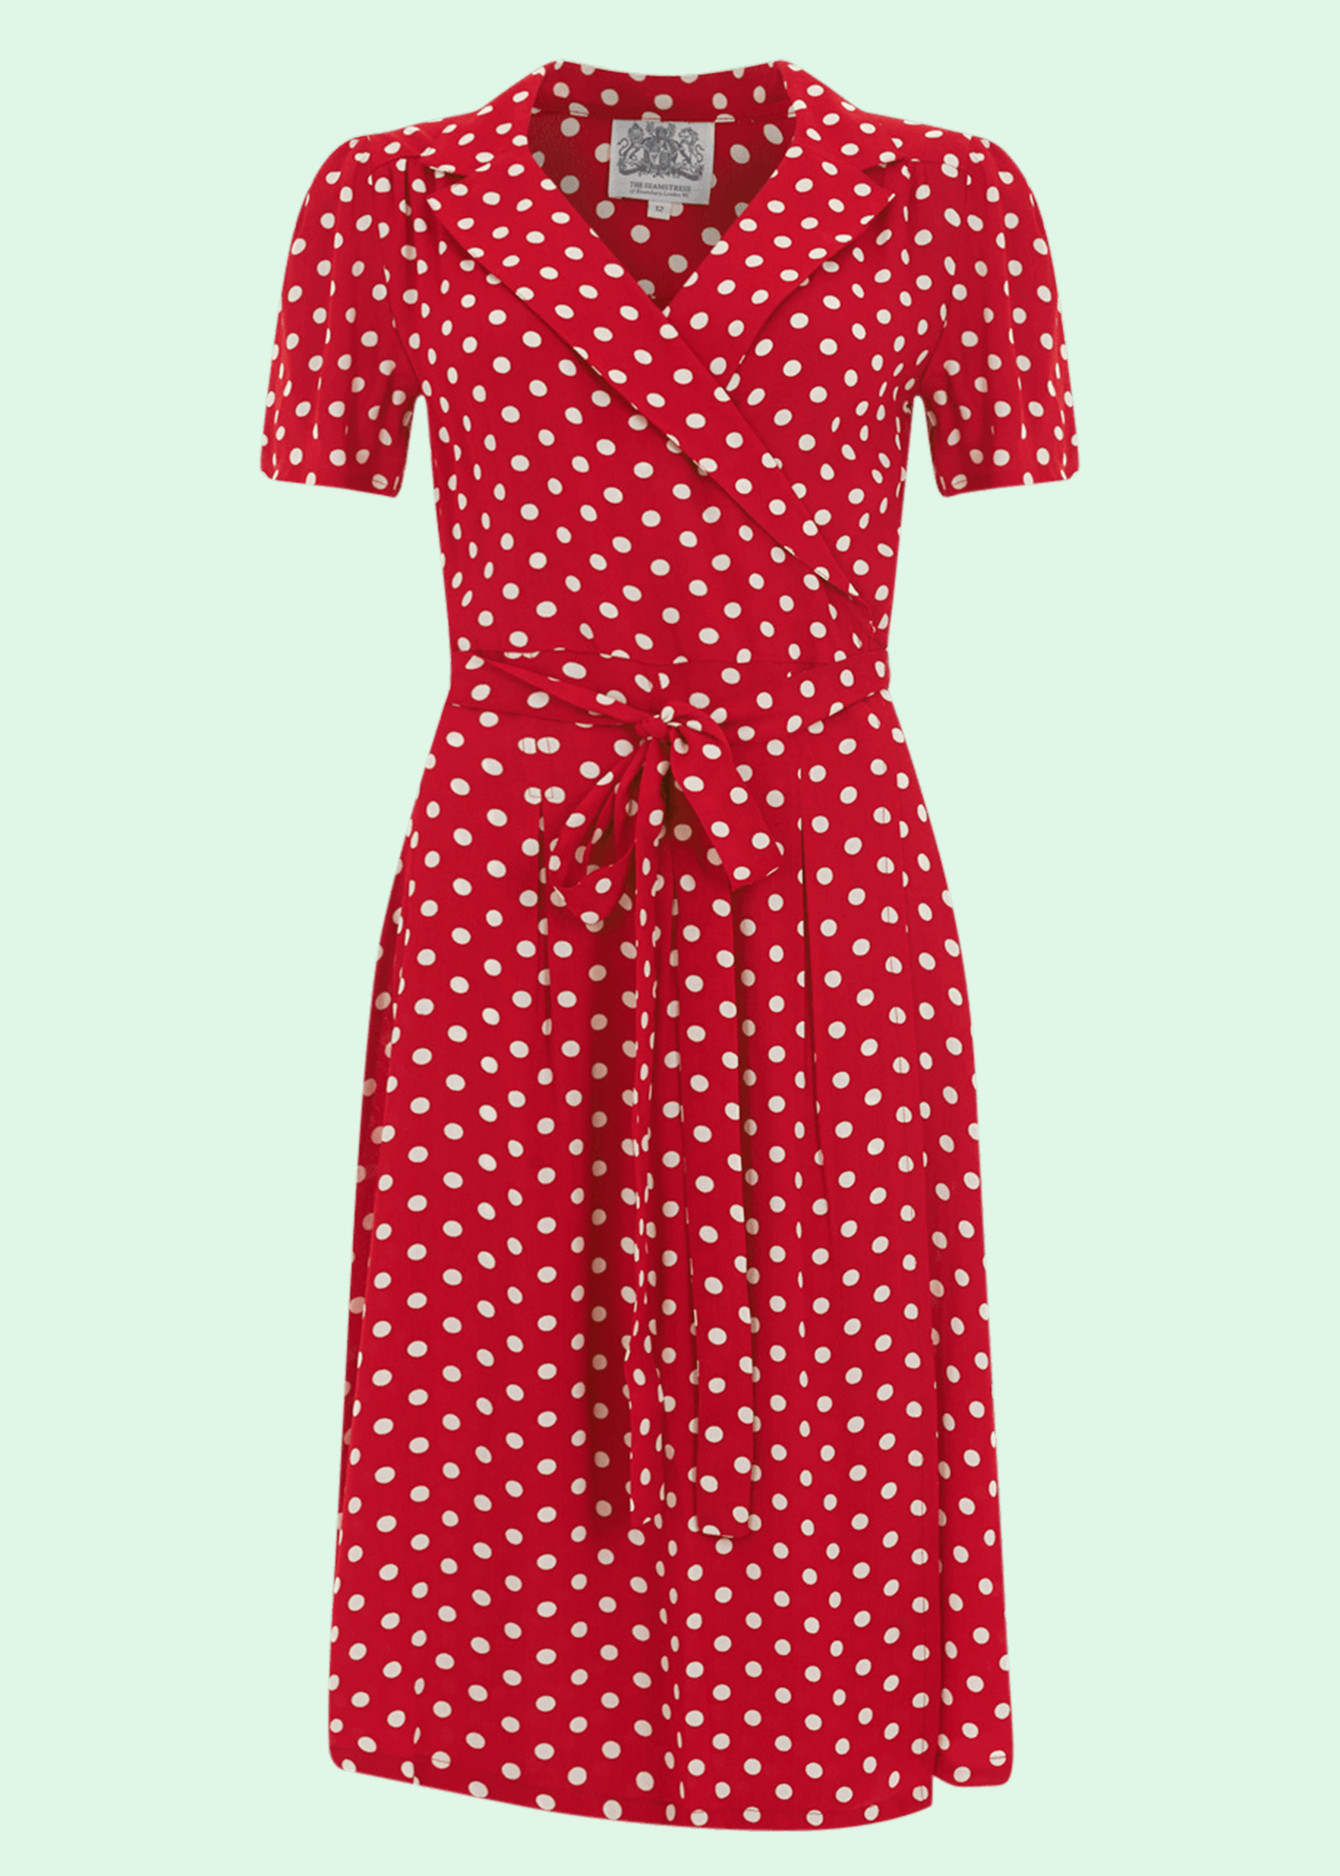 Retro and vintage styles turn around dresses